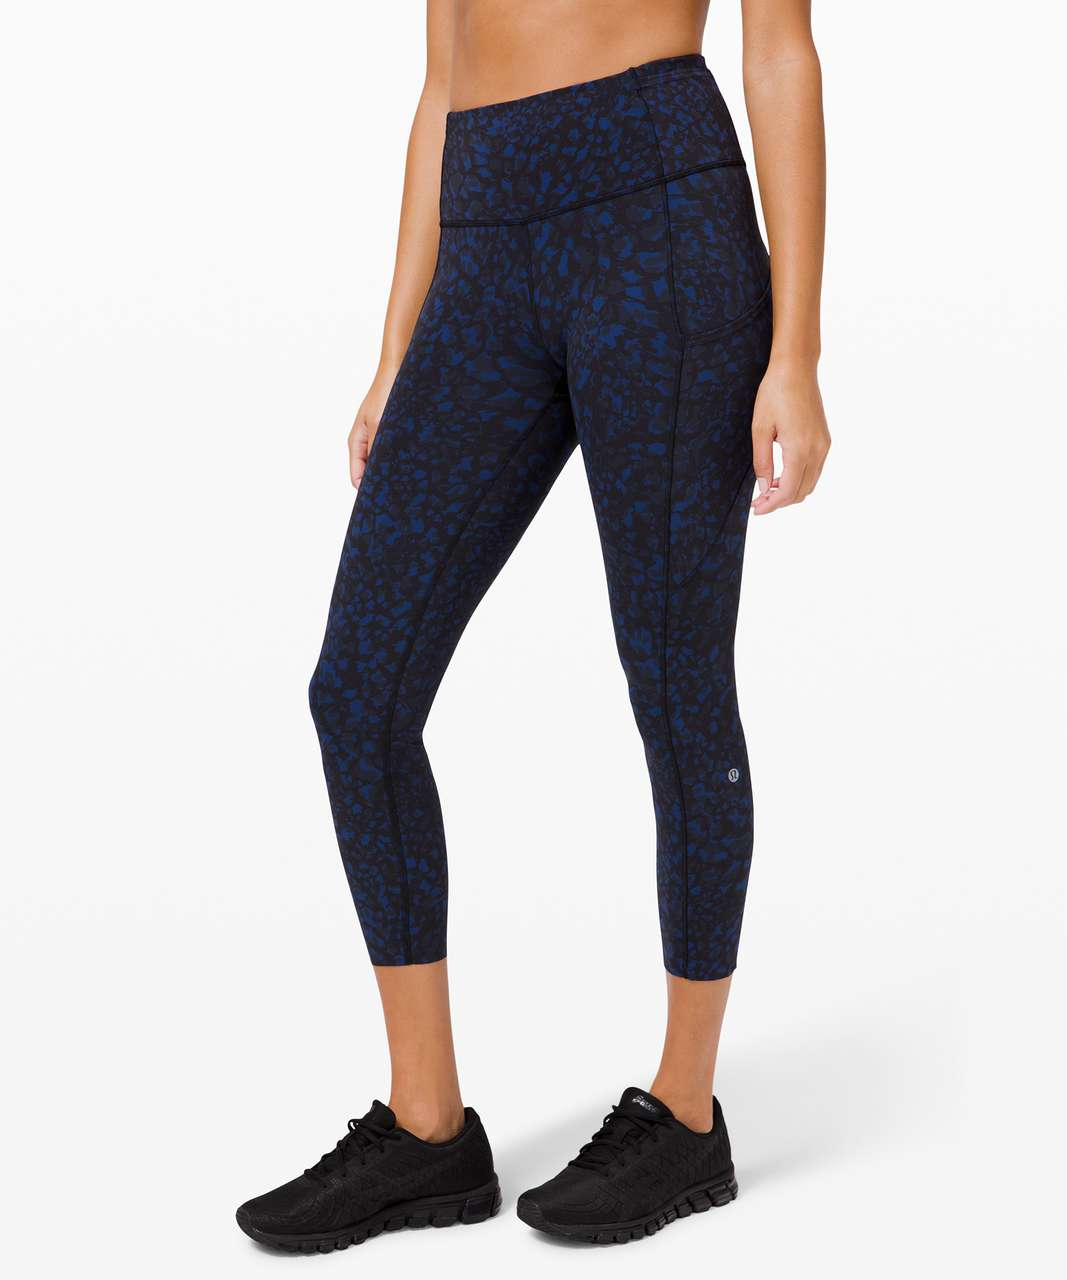 """Lululemon Fast and Free High-Rise Crop II 23"""" *Non-Reflective - Wild Thing Camo Larkspur Multi"""